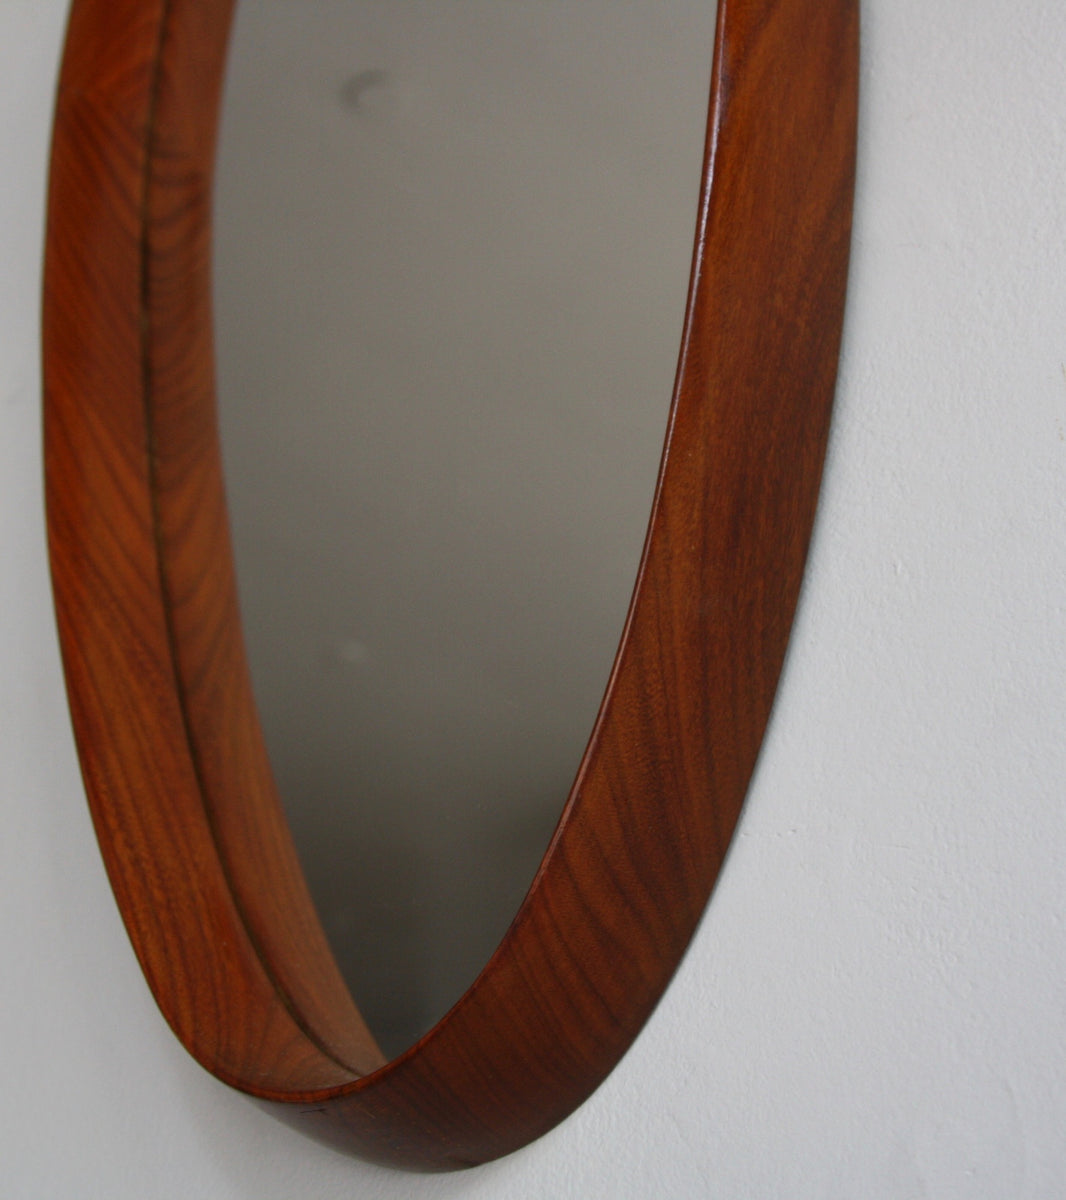 Teak Oval Mirror with Leather Denmark C. 1950 - Image 7